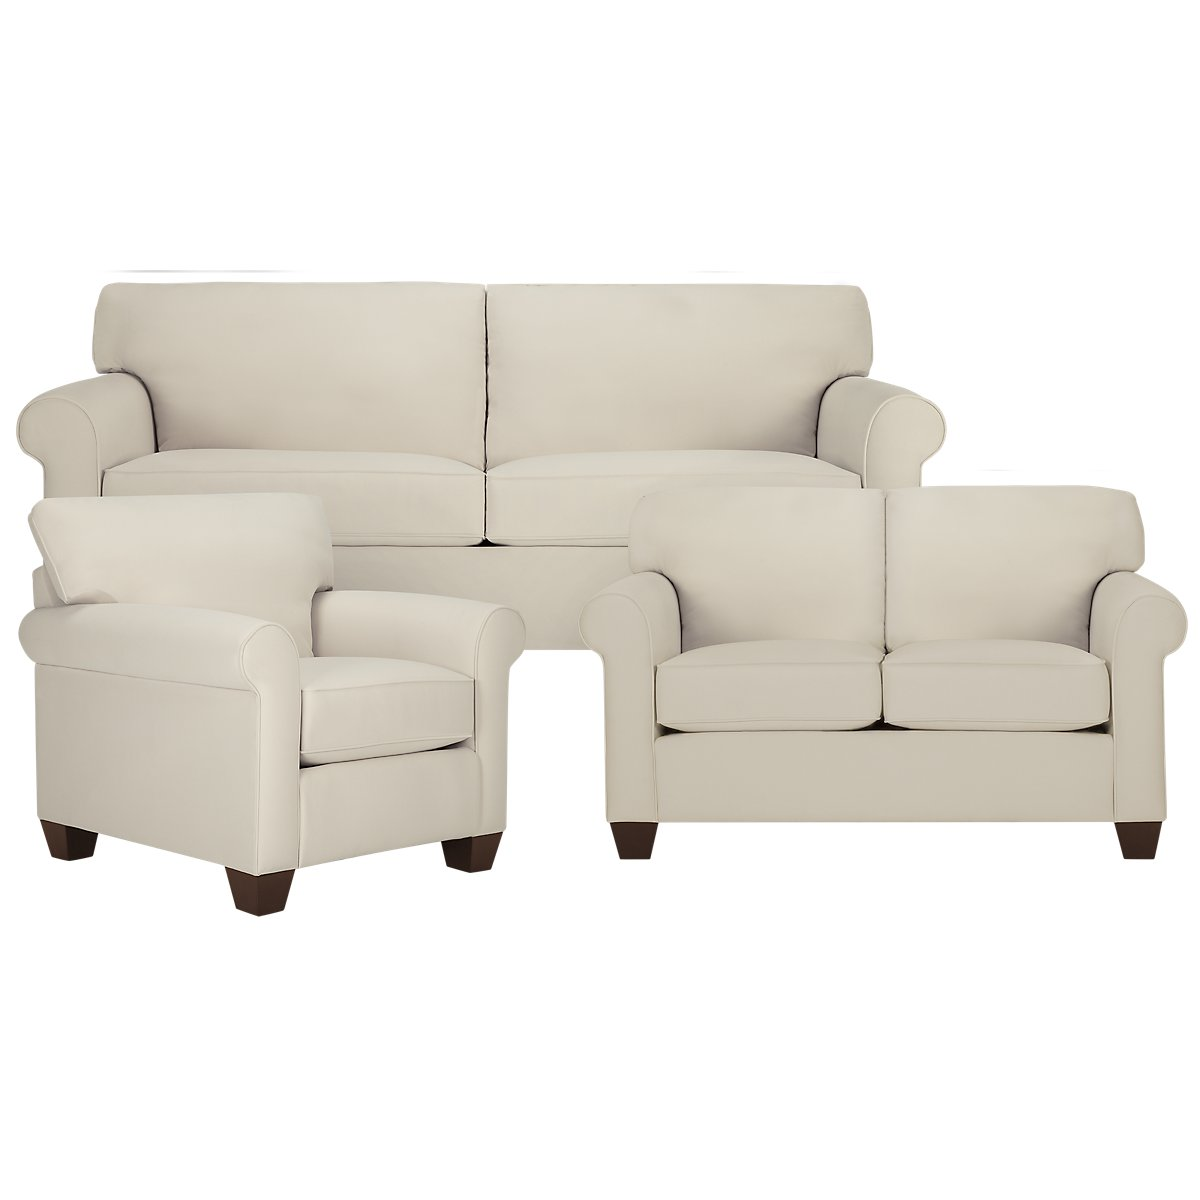 Corlis Light Beige Fabric Living Room